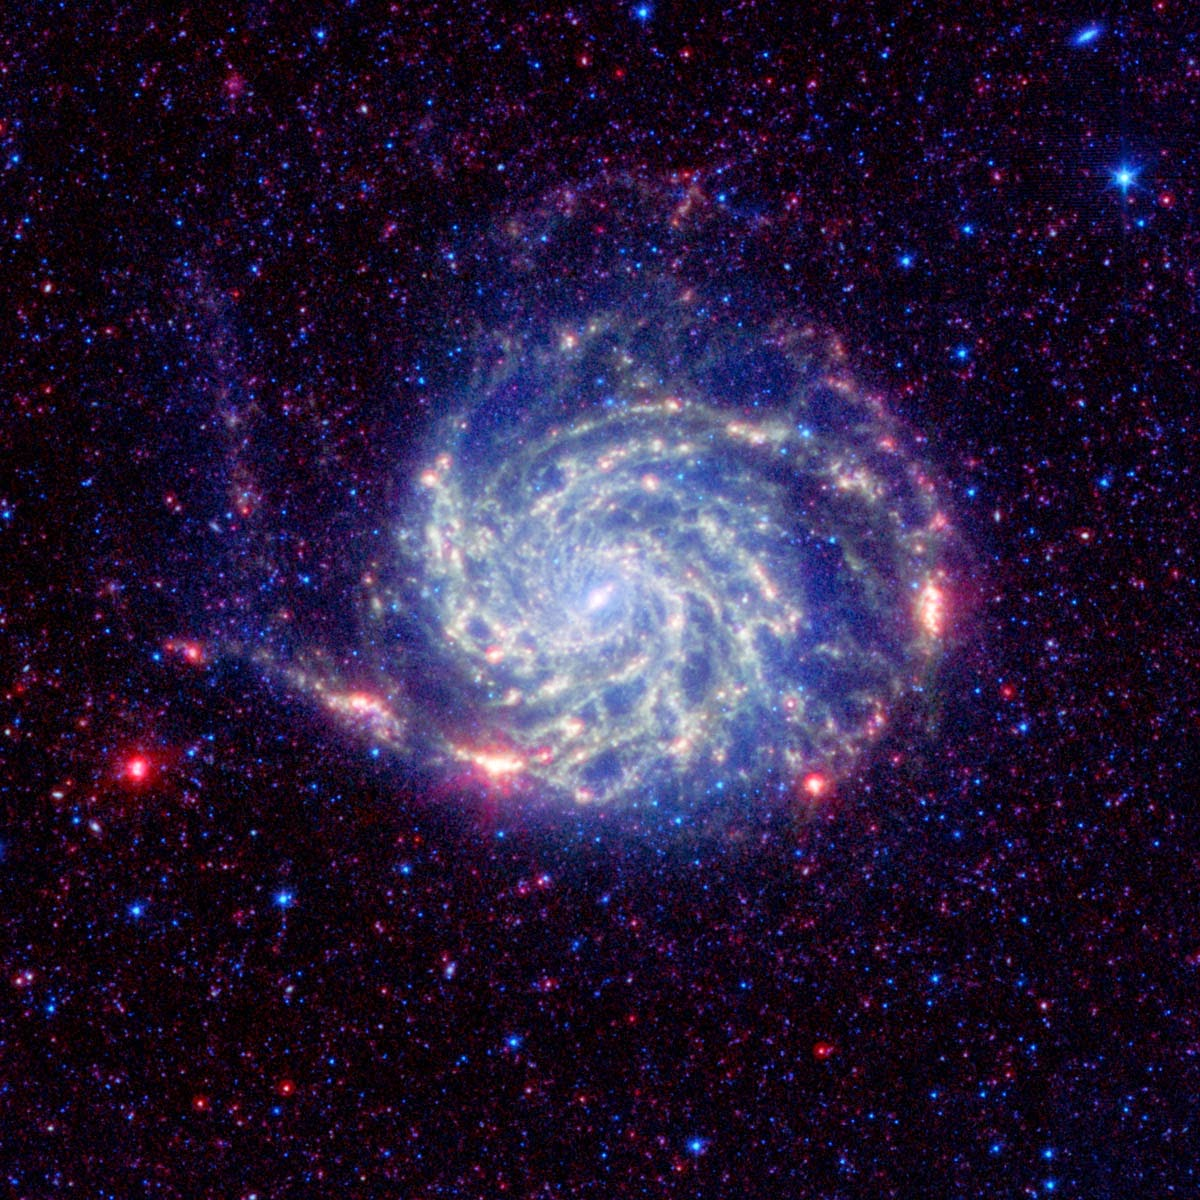 Nasa images of space space wallpaper - Nasa space wallpaper ...